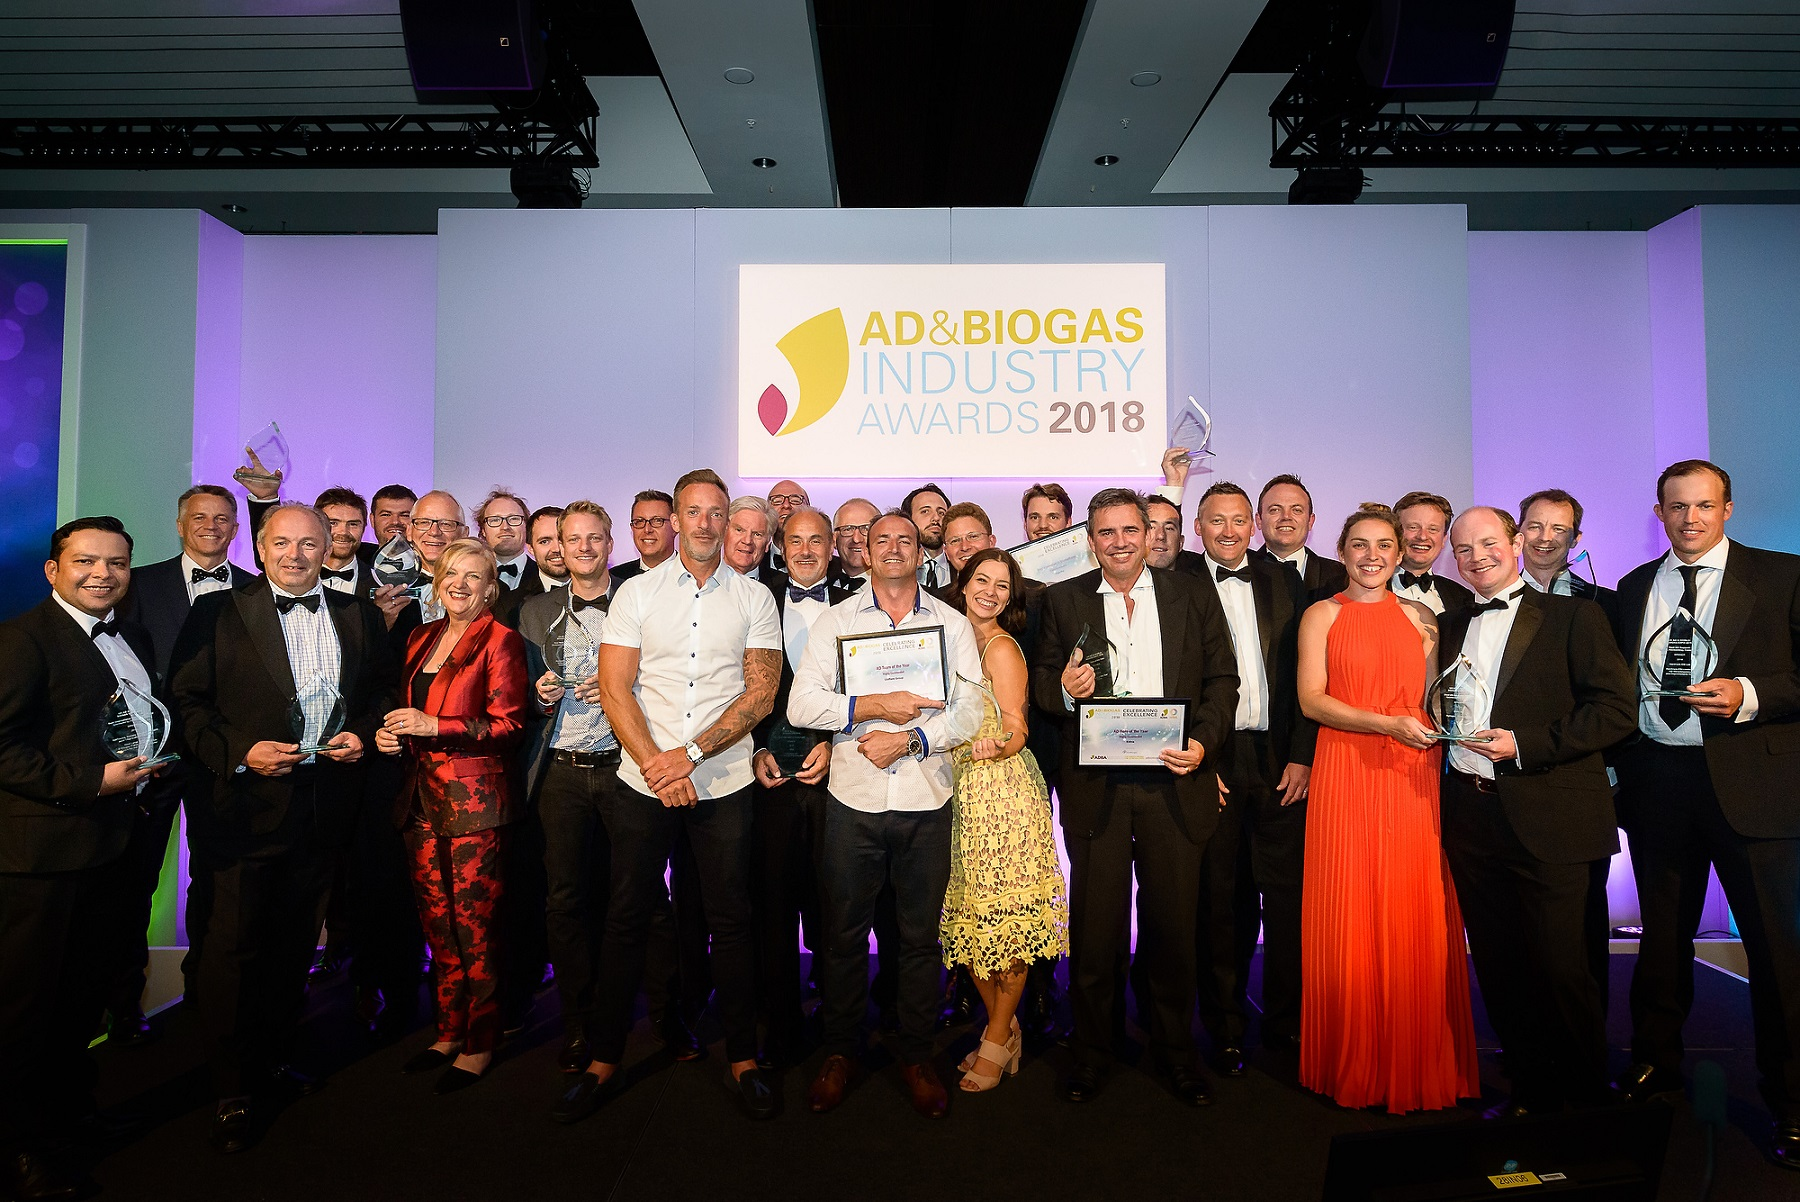 PRESS RELEASE: Best In Biogas Celebrated At Industry Awards Ceremony